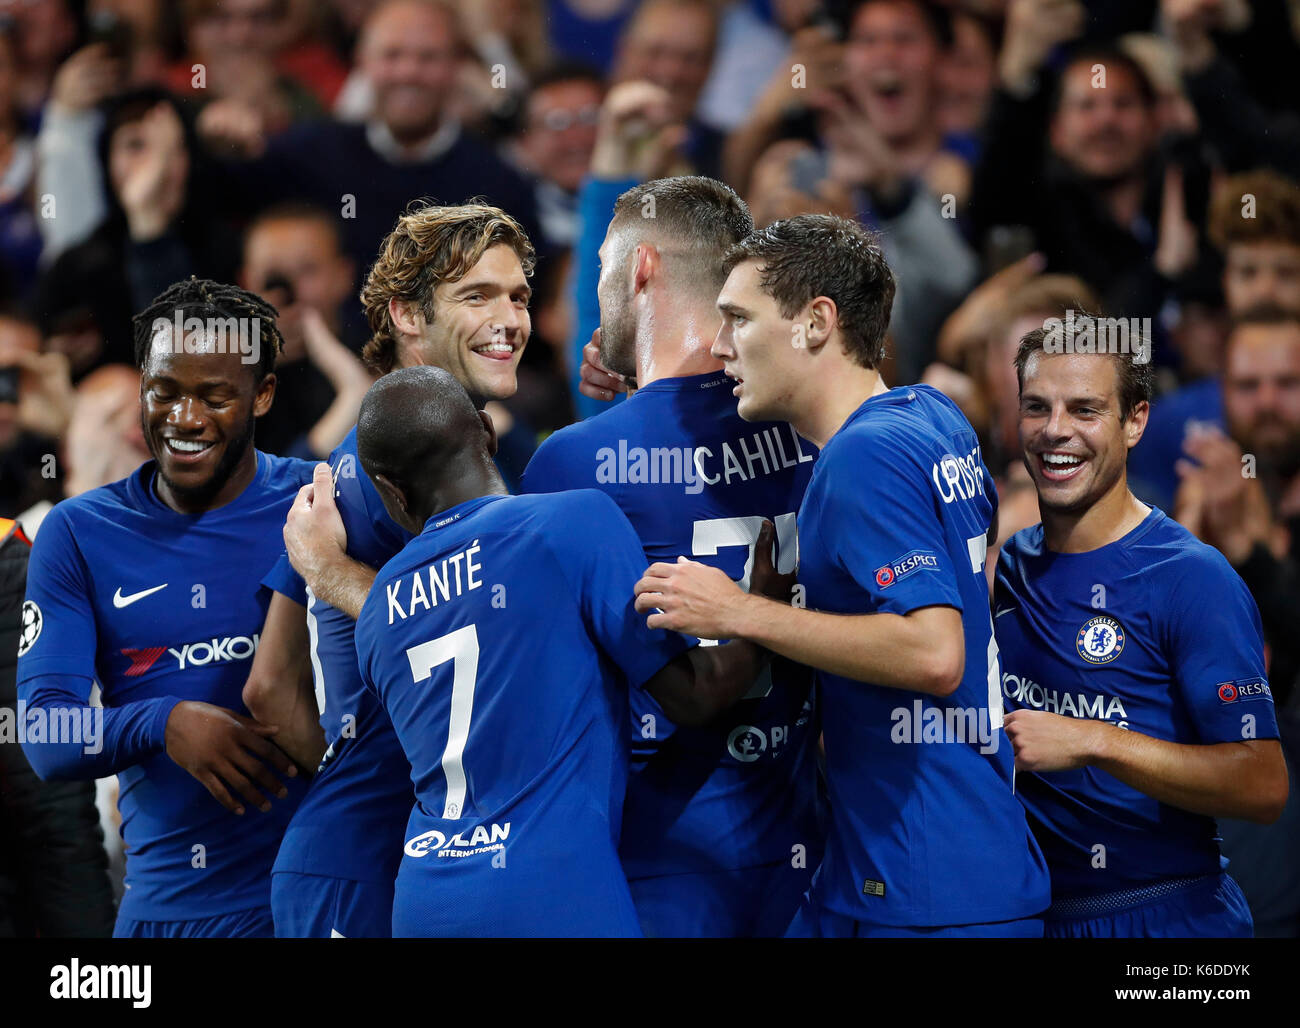 London, UK. 12th Sep, 2017. Players of Chelsea celebrate after scoring during the UEFA Champions League Group C Stock Photo